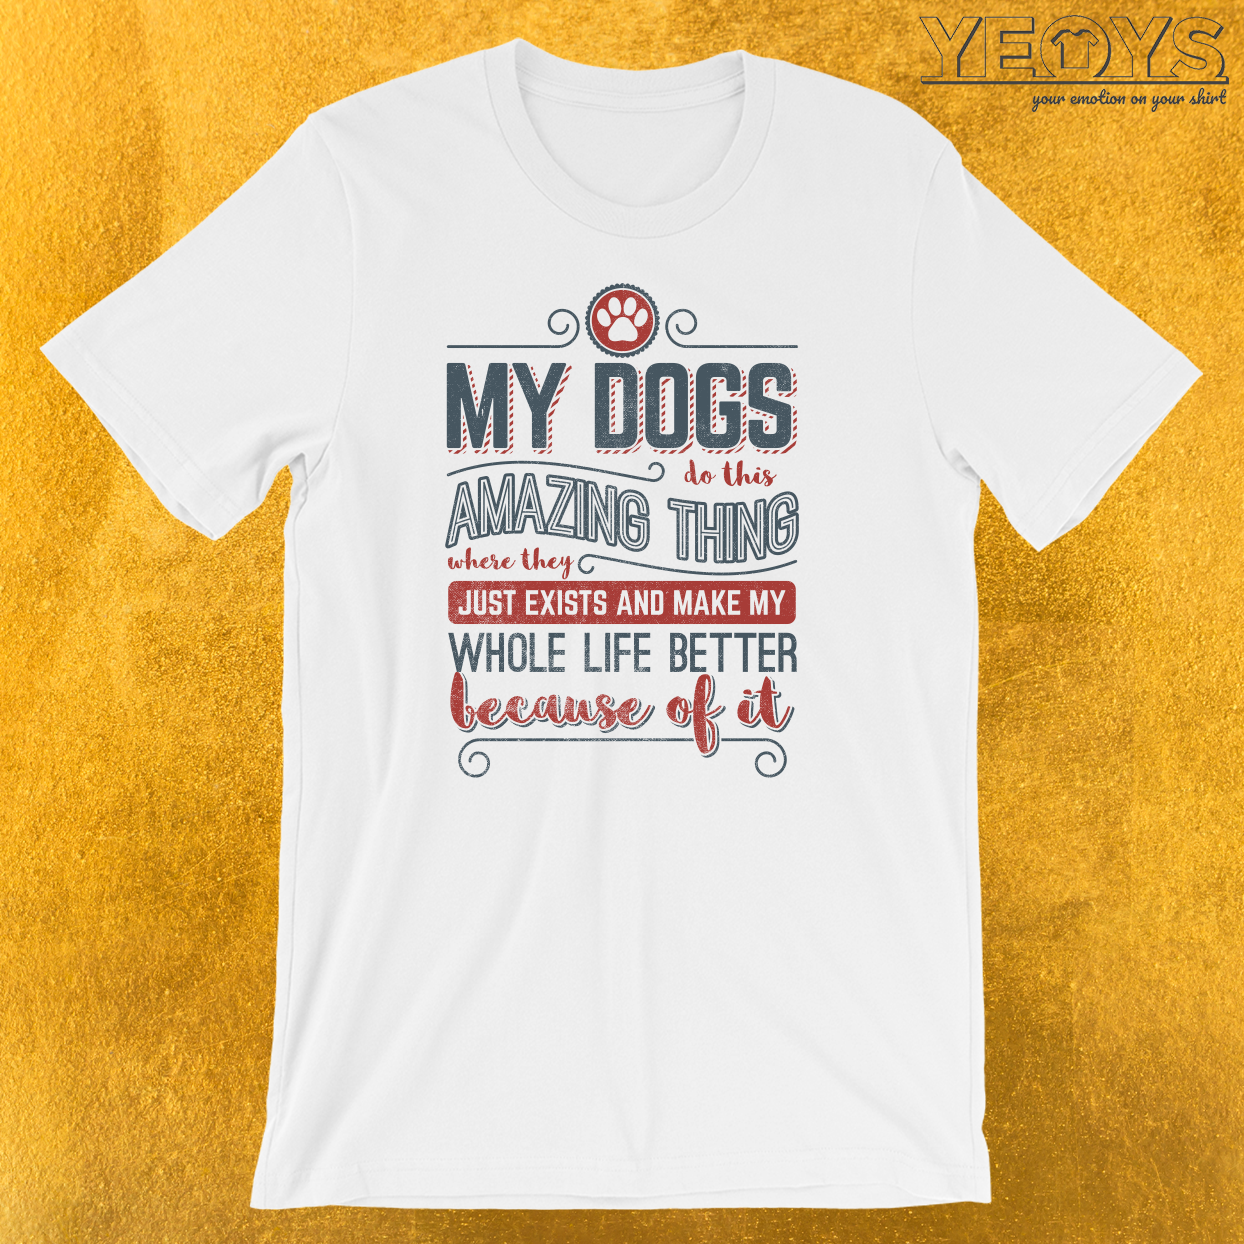 My Dogs Do This Amazing Thing T-Shirt